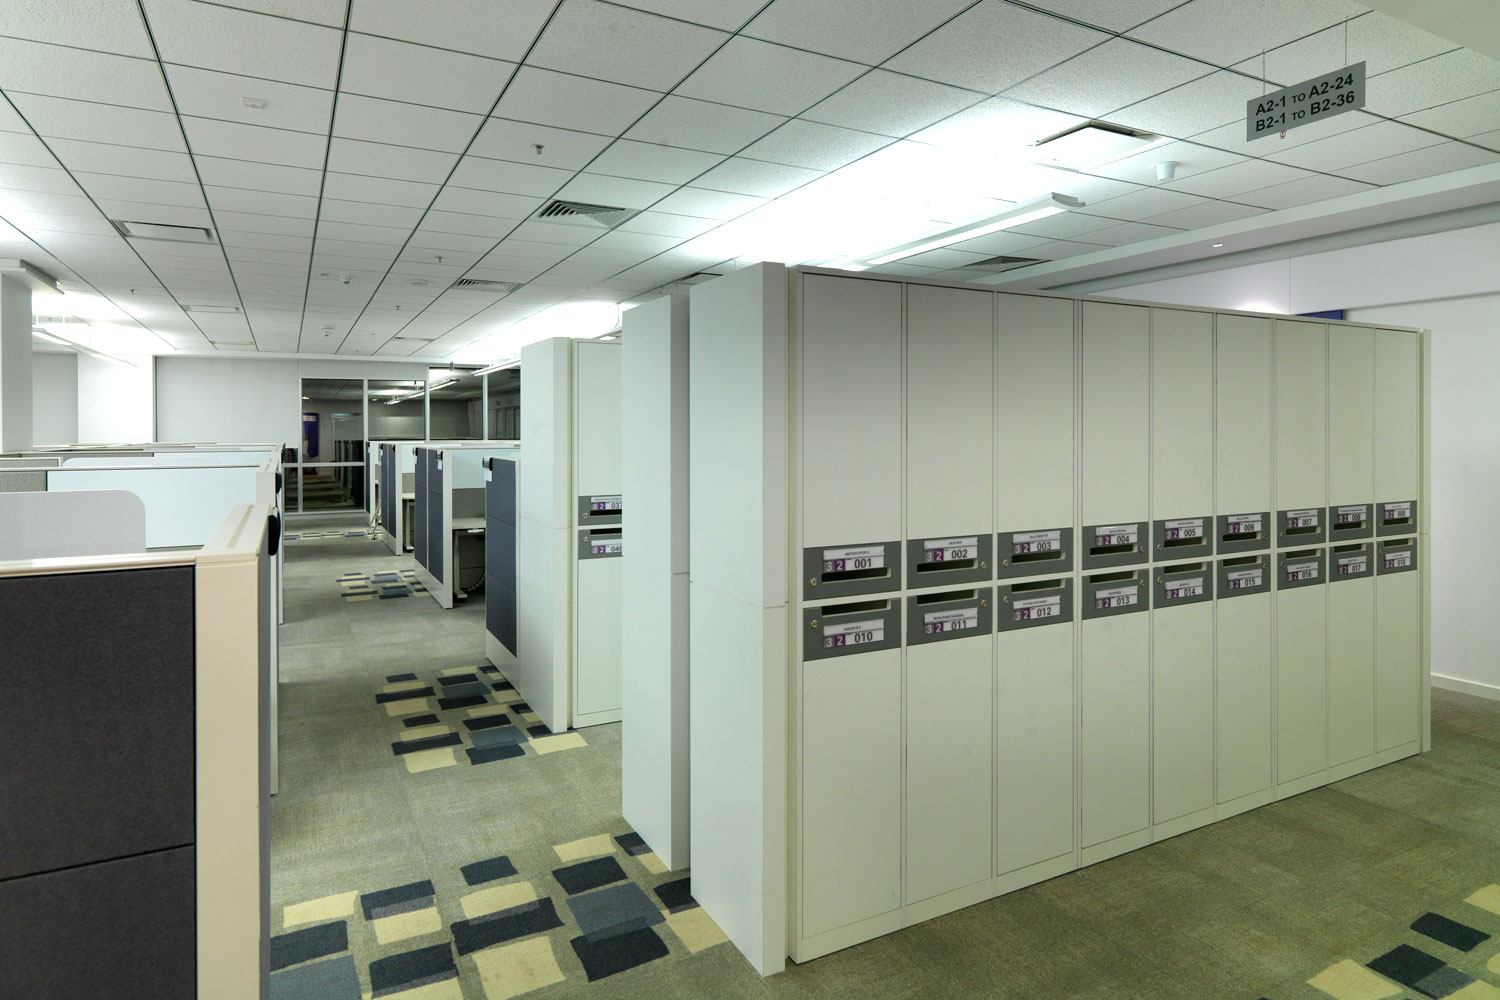 Team storage cisco connected workplace for Office images